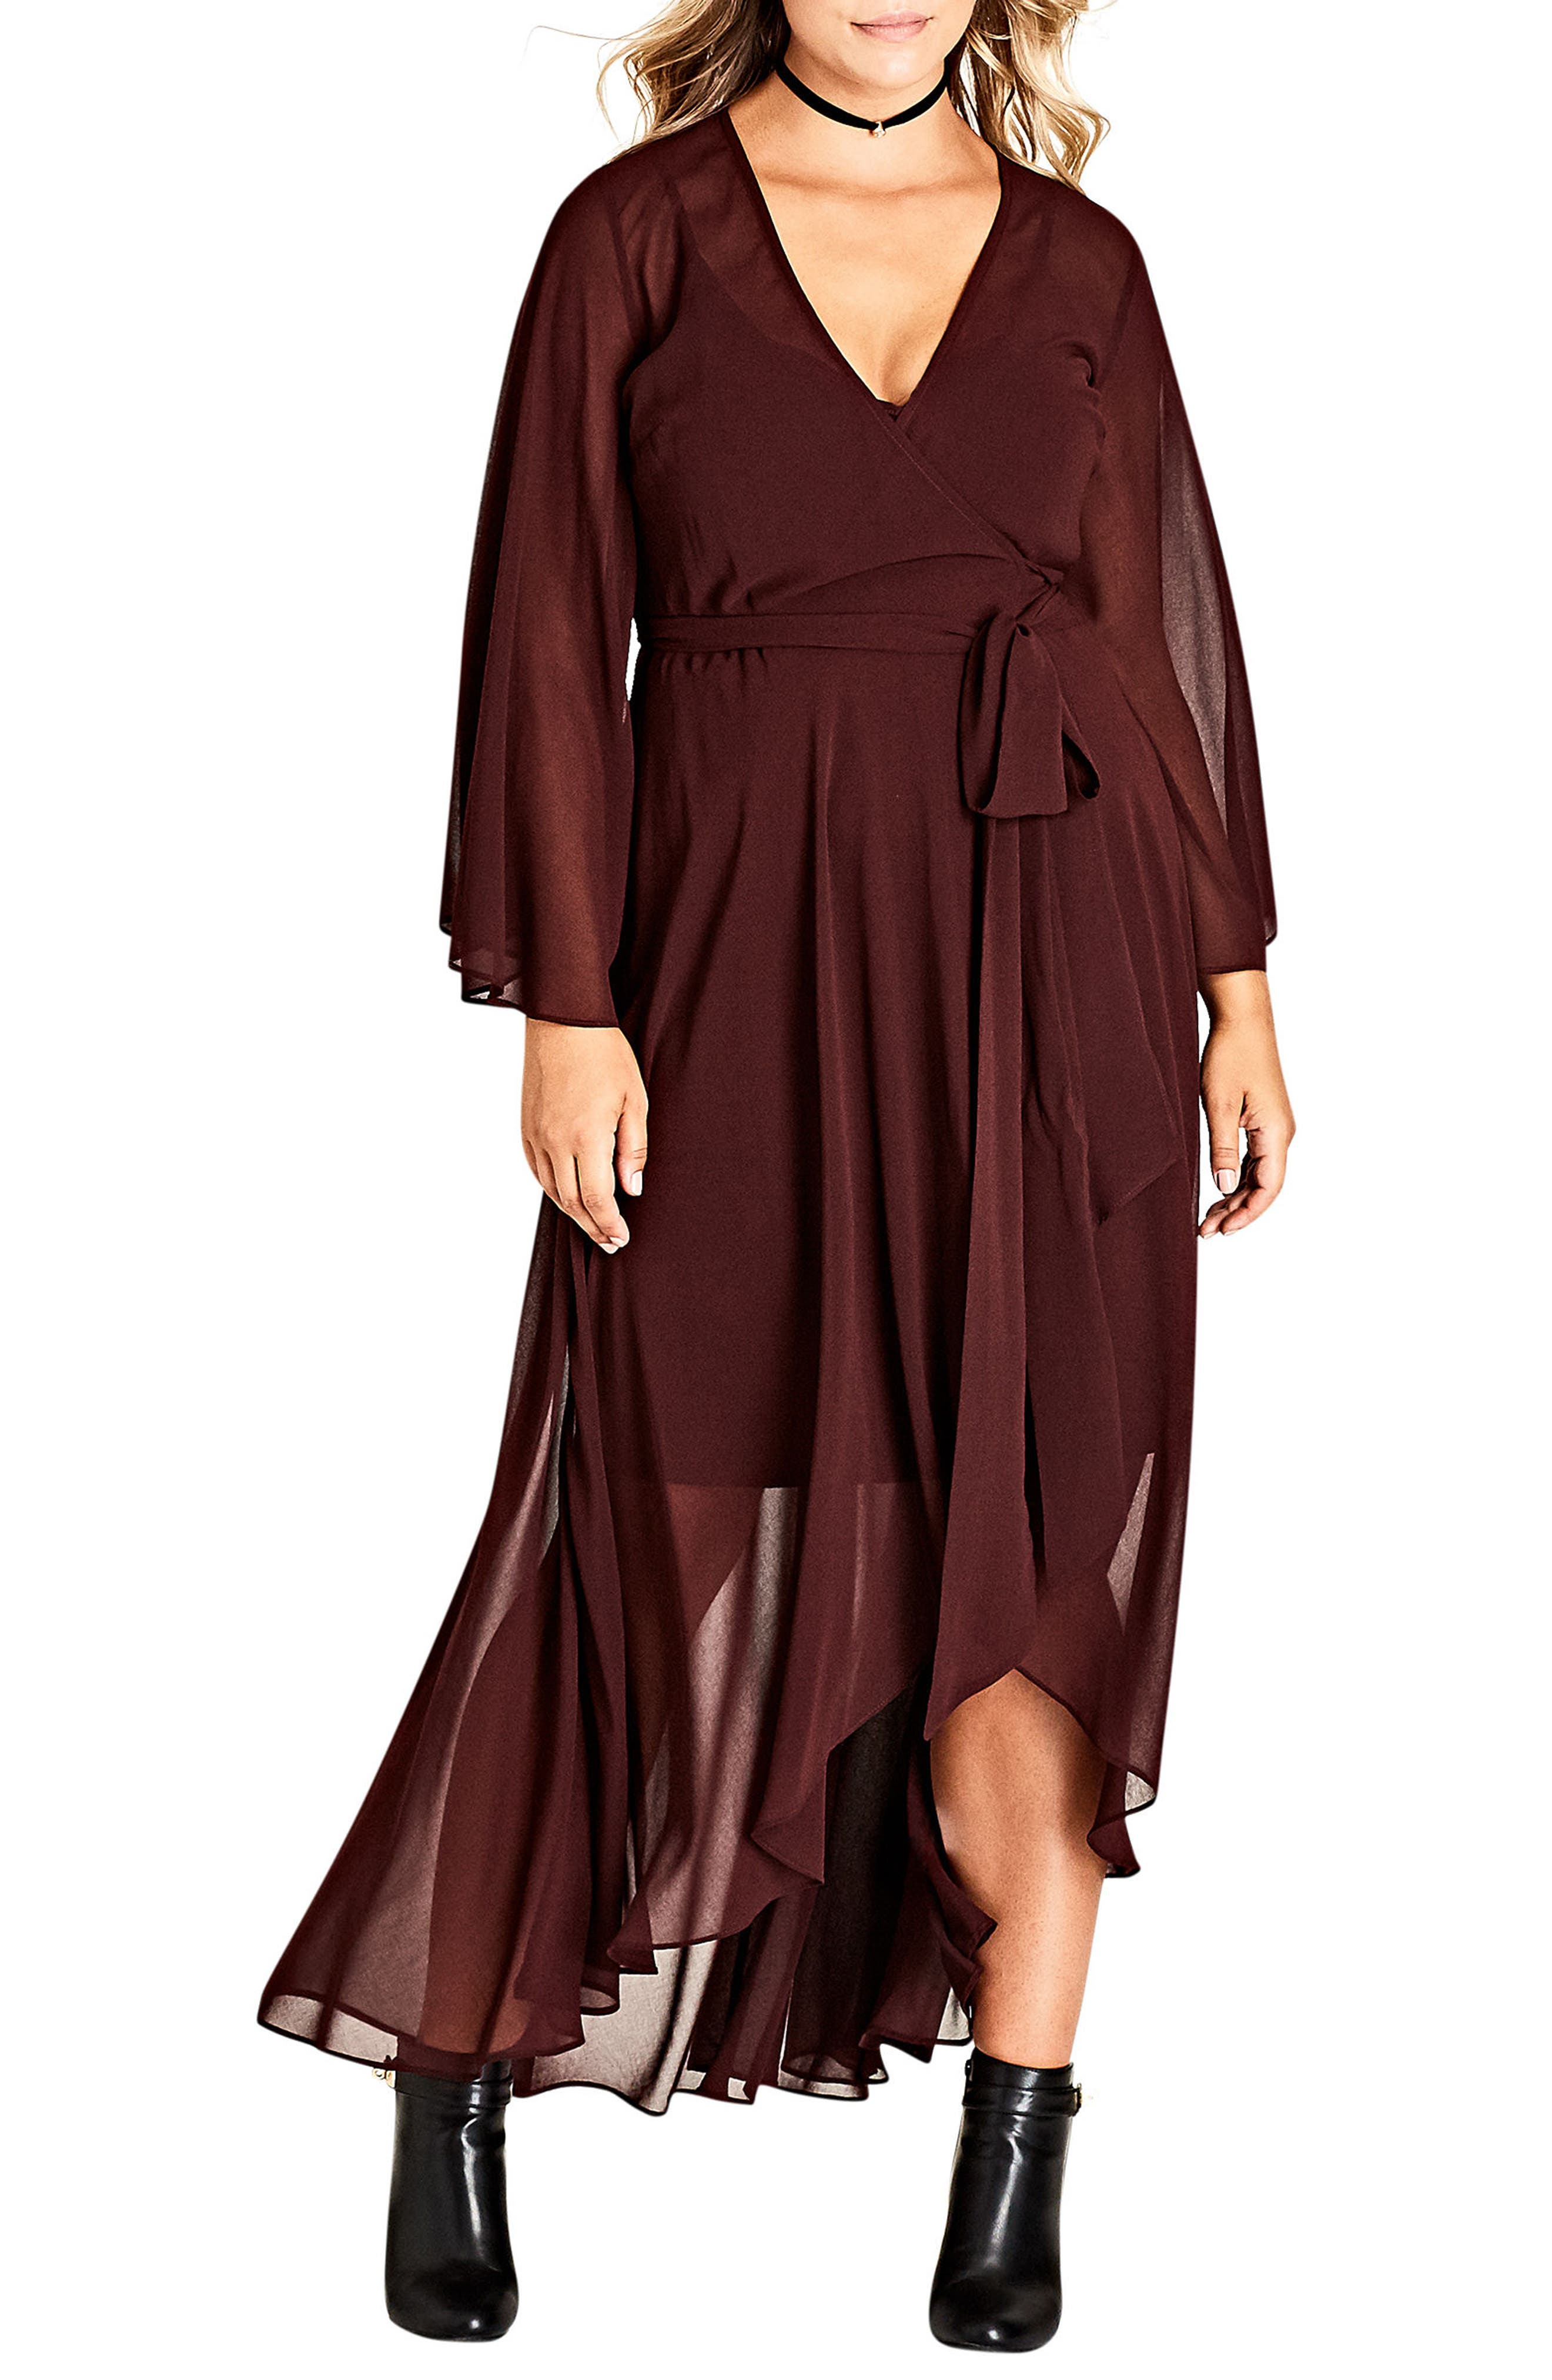 Main Image - City Chic 'Fleetwood' Maxi Dress (Plus Size)